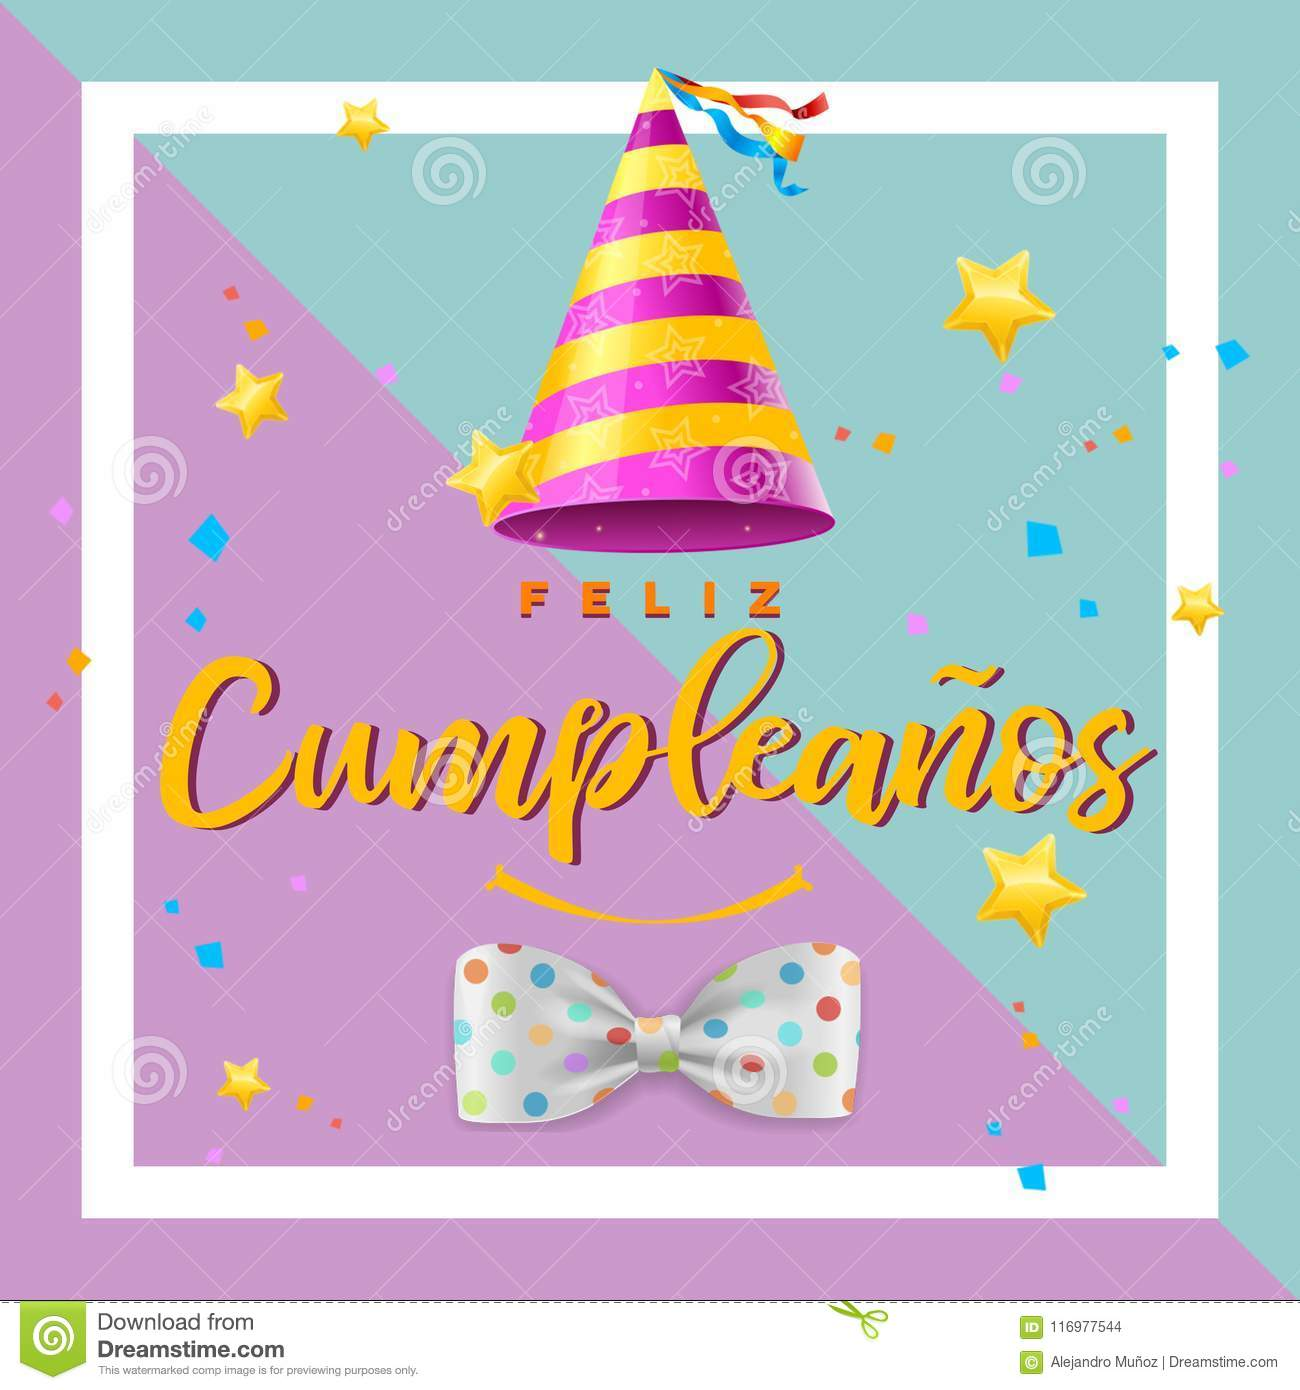 Happy Birthday Card In Spanish With Cheerful Colors And Fun Elements